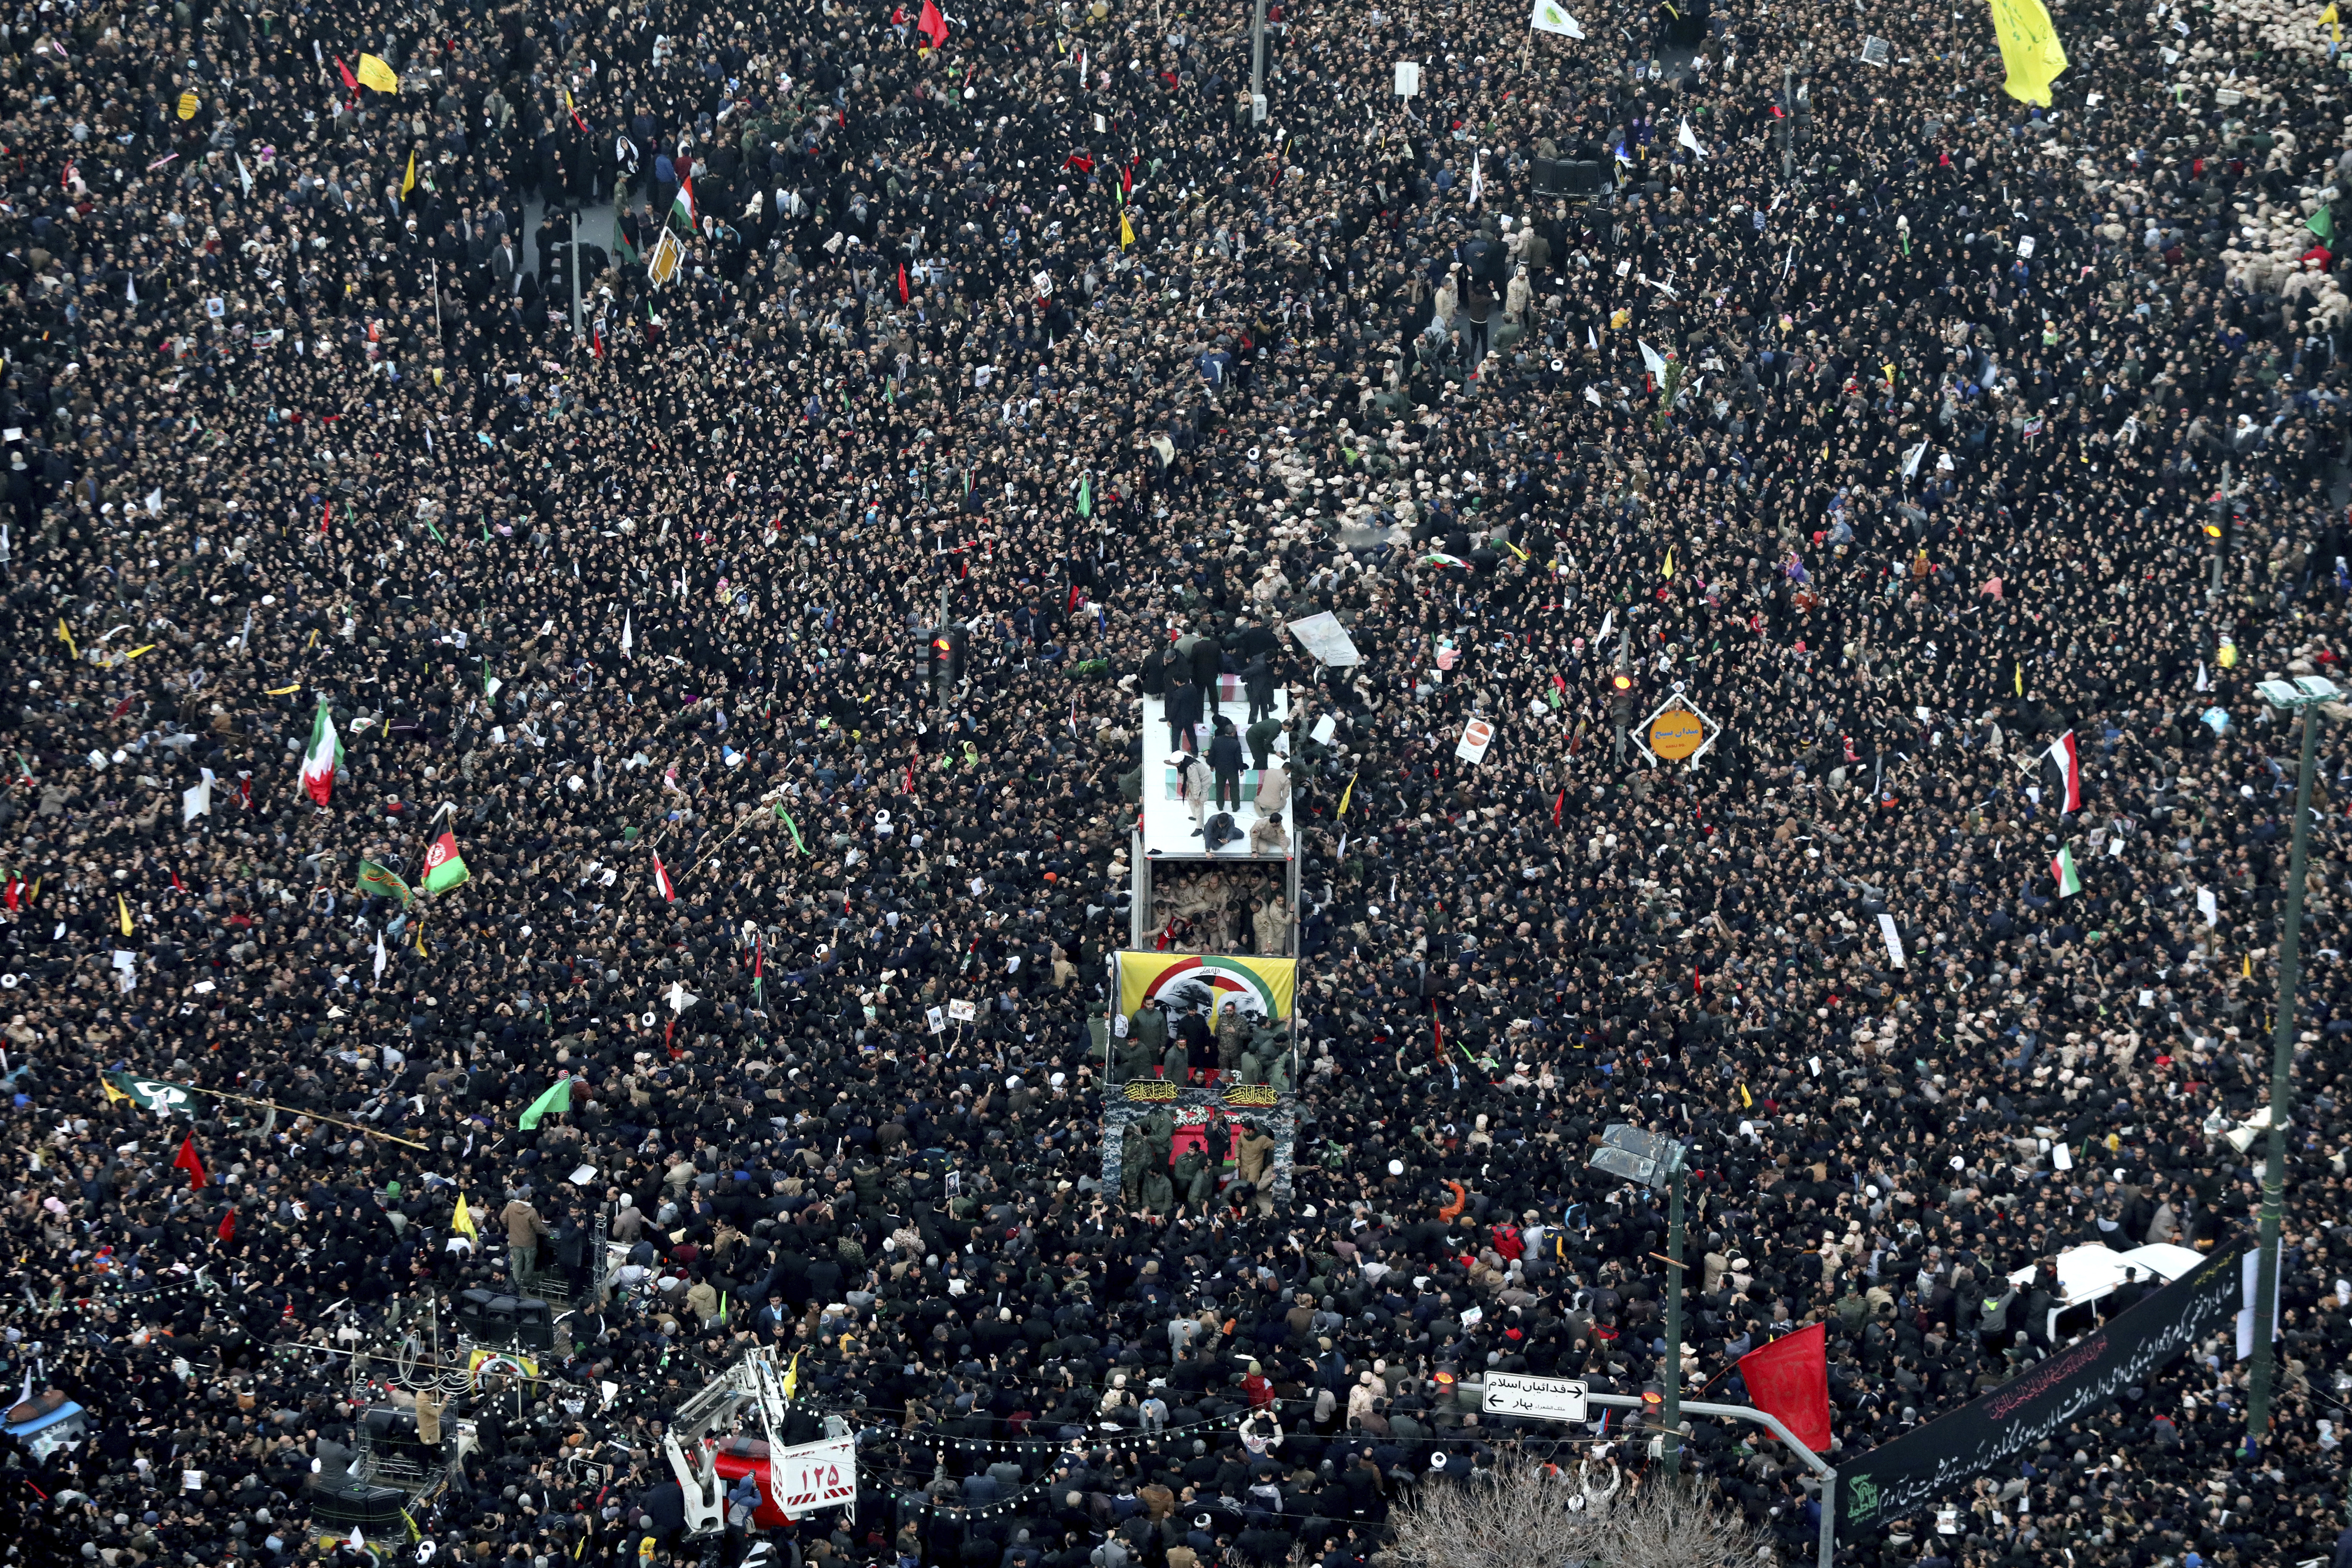 Coffins of Gen. Qassem Soleimani and others who were killed in Iraq by a U.S. drone strike, are carried on a truck surrounded by mourners during a funeral procession, in the city of Mashhad, Iran, on Jan. 5, 2020.